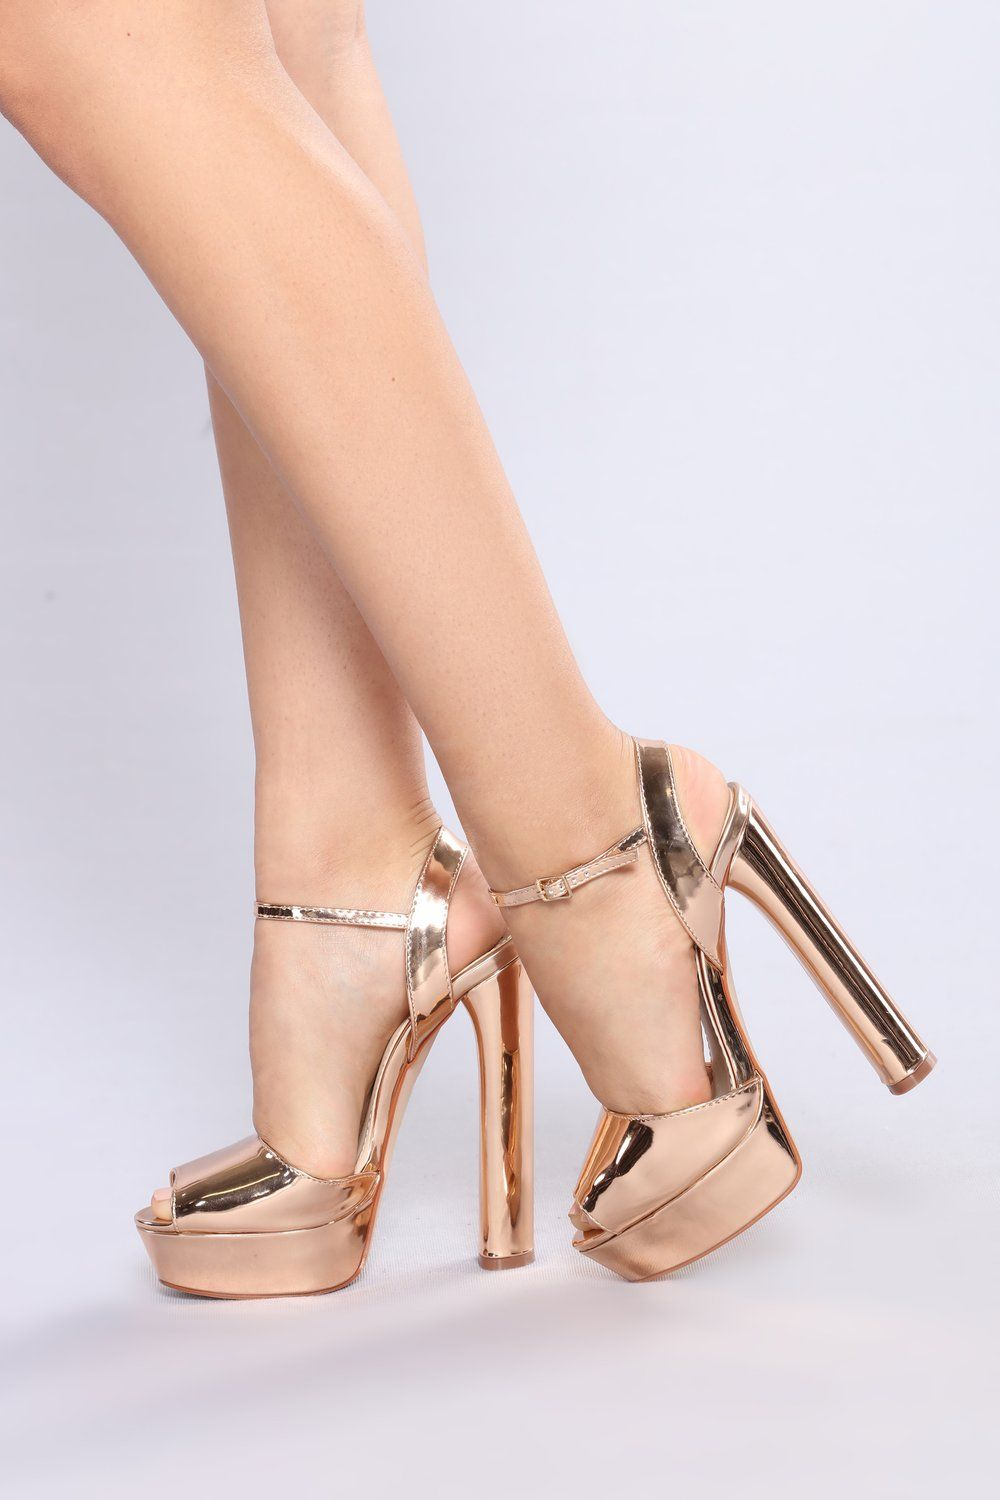 ddc1141dda7 Scuba Sexy Heel - Rose Gold | Sexy Heels in 2019 | Rose gold heels ...